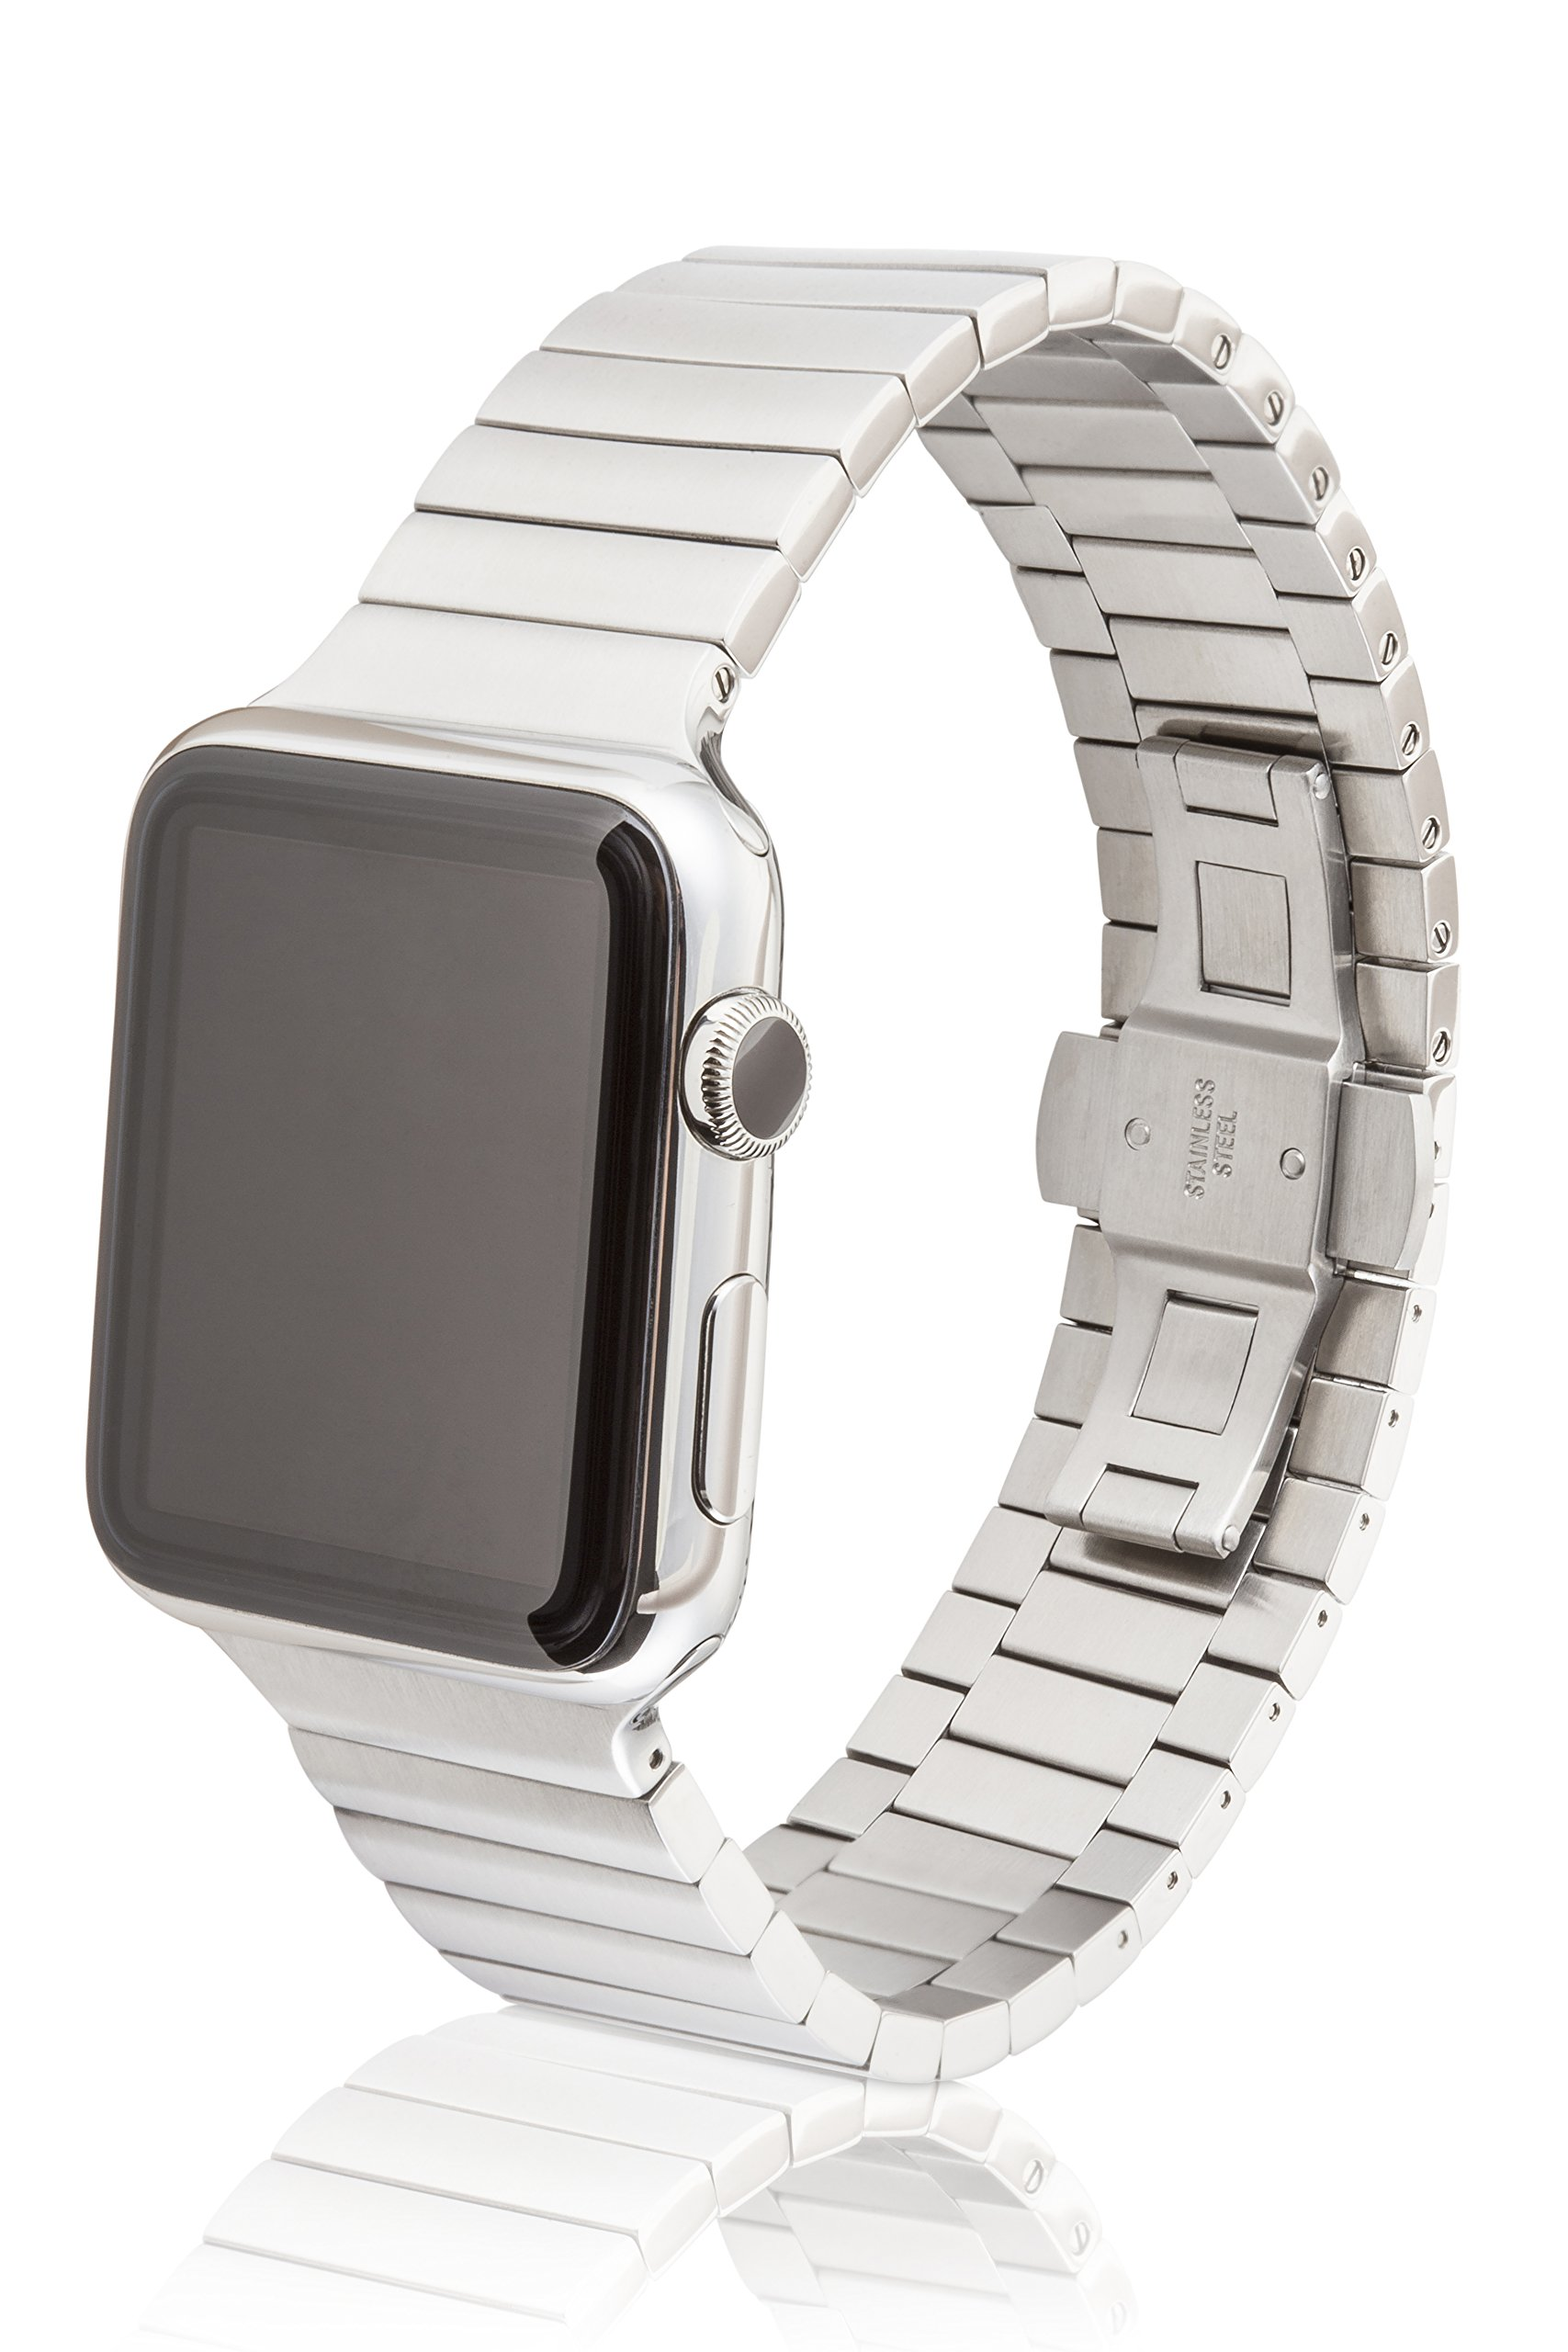 42mm JUUK Revo Premium Apple Watch band, made with Swiss quality using only the highest grade solid 316L stainless steel with a satin brushed finish and solid steel butterfly deployant buckle